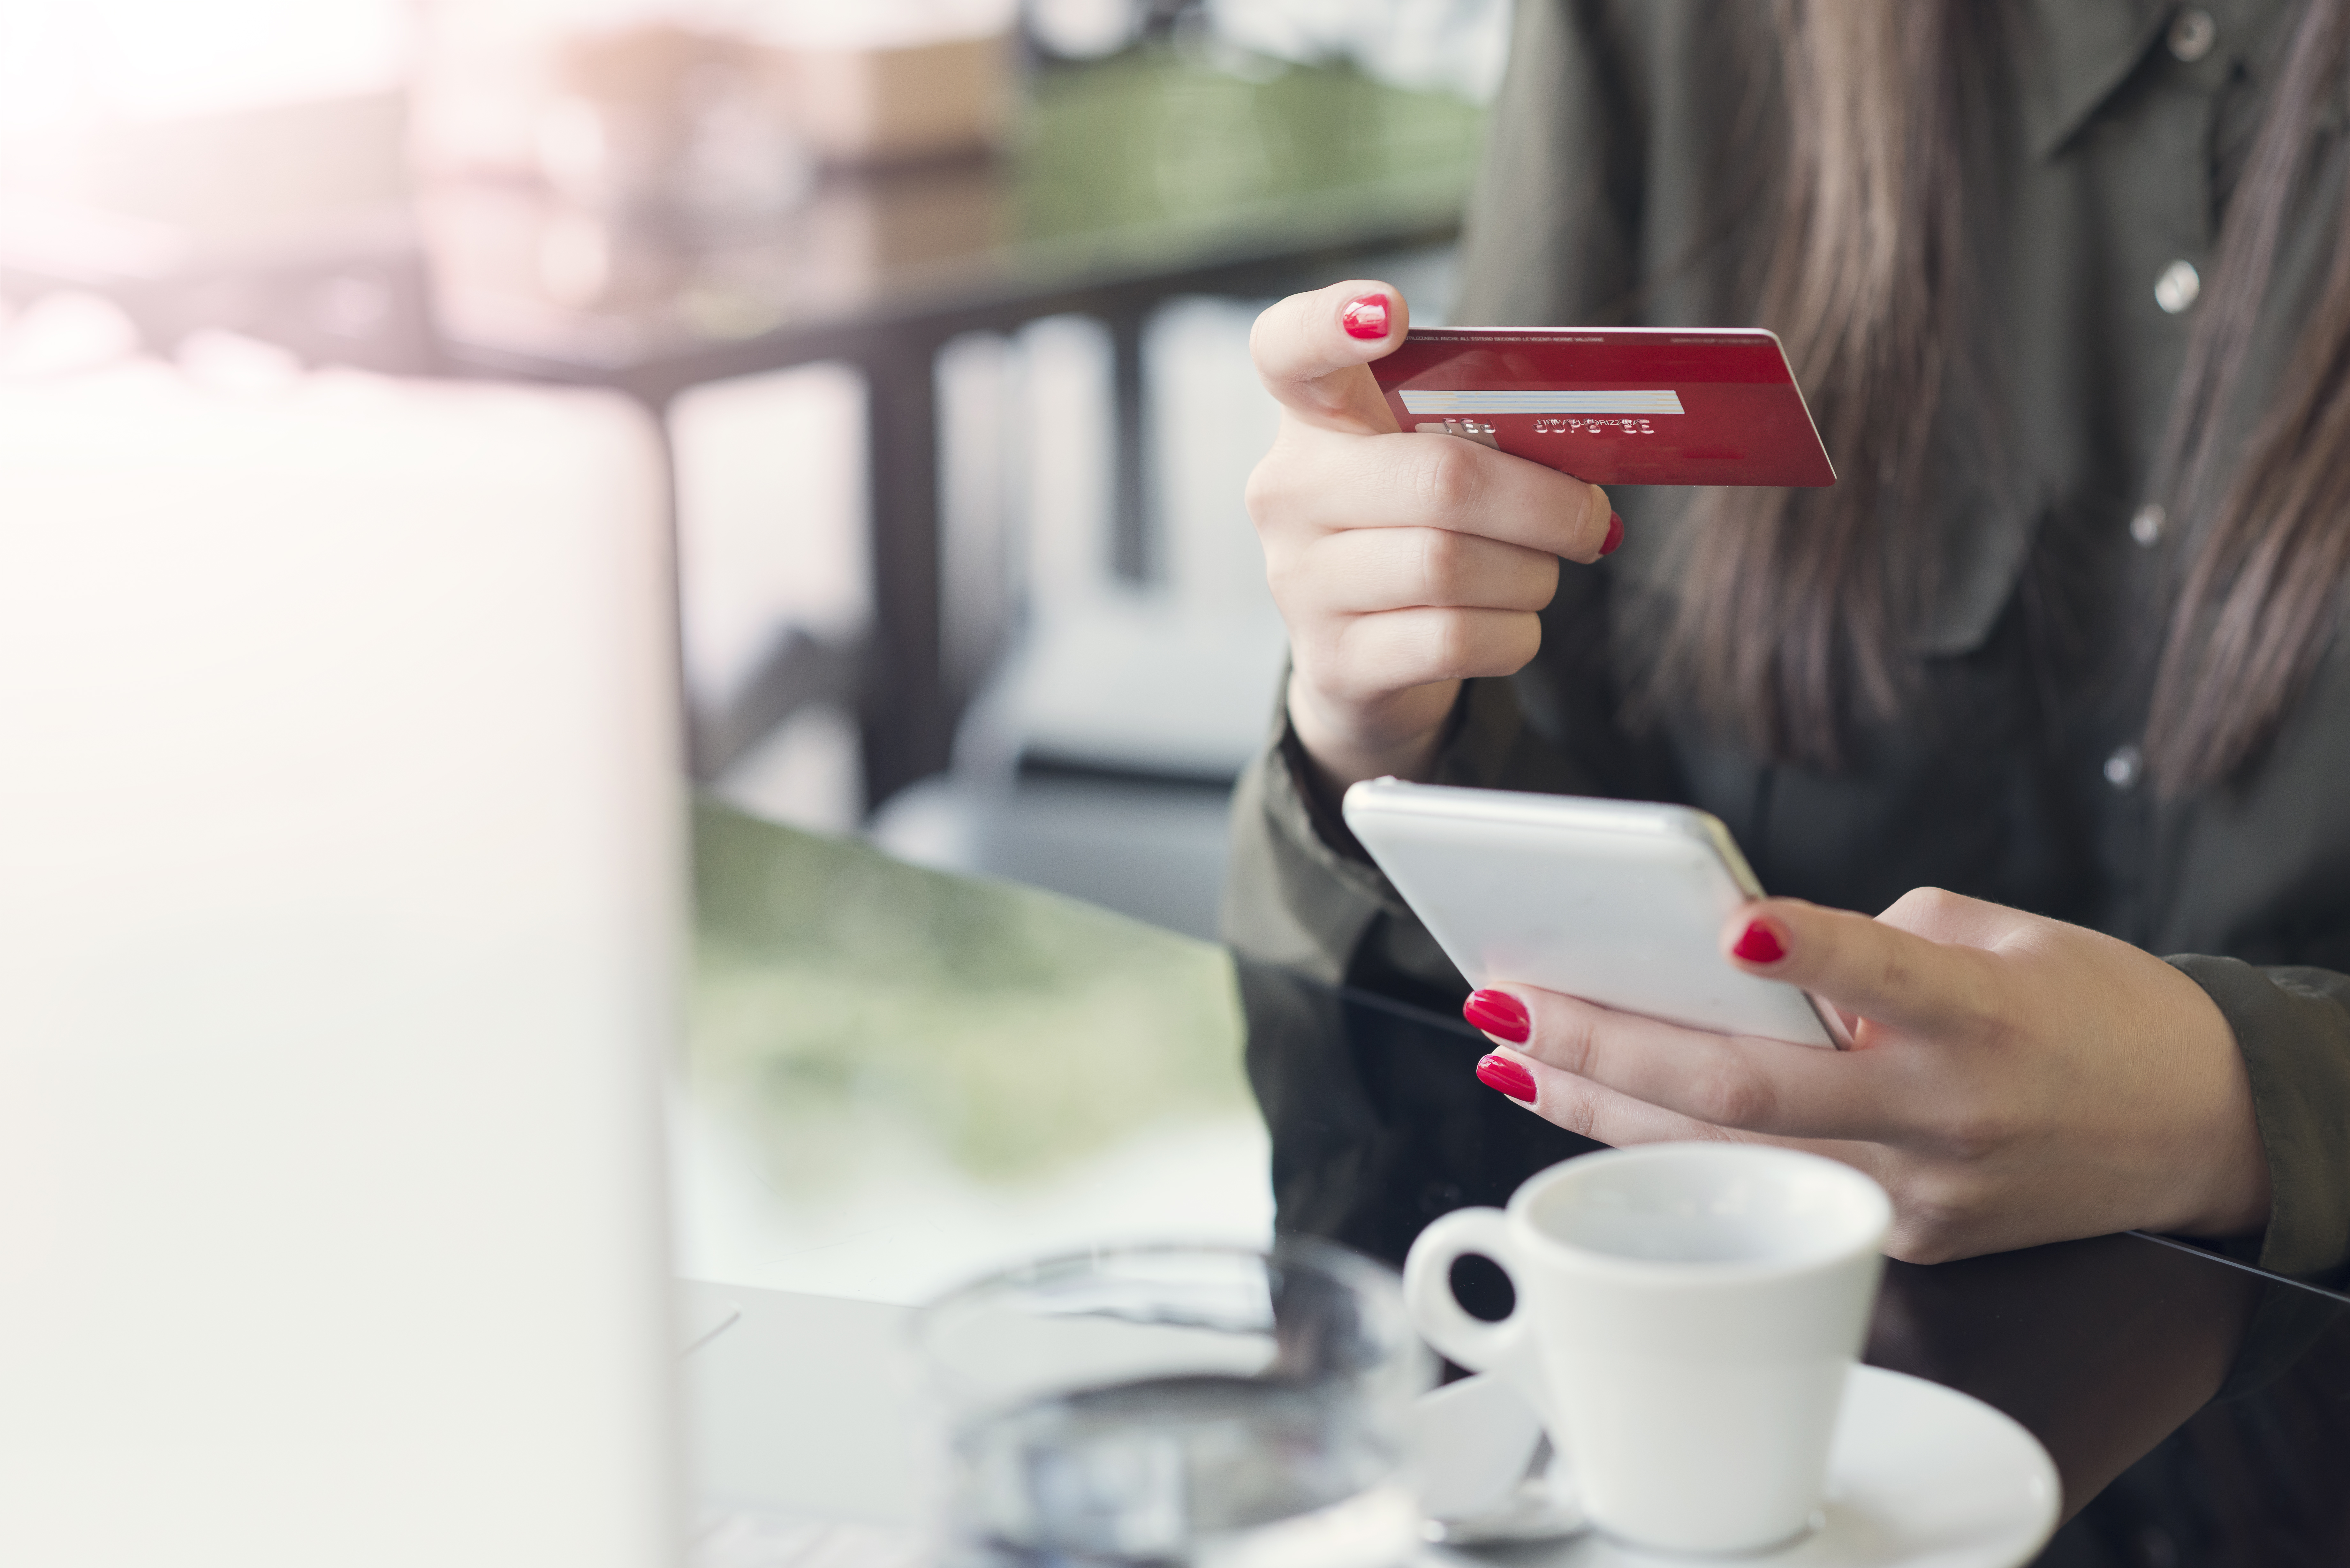 Instagram checkout: Brands will start selling products through the app